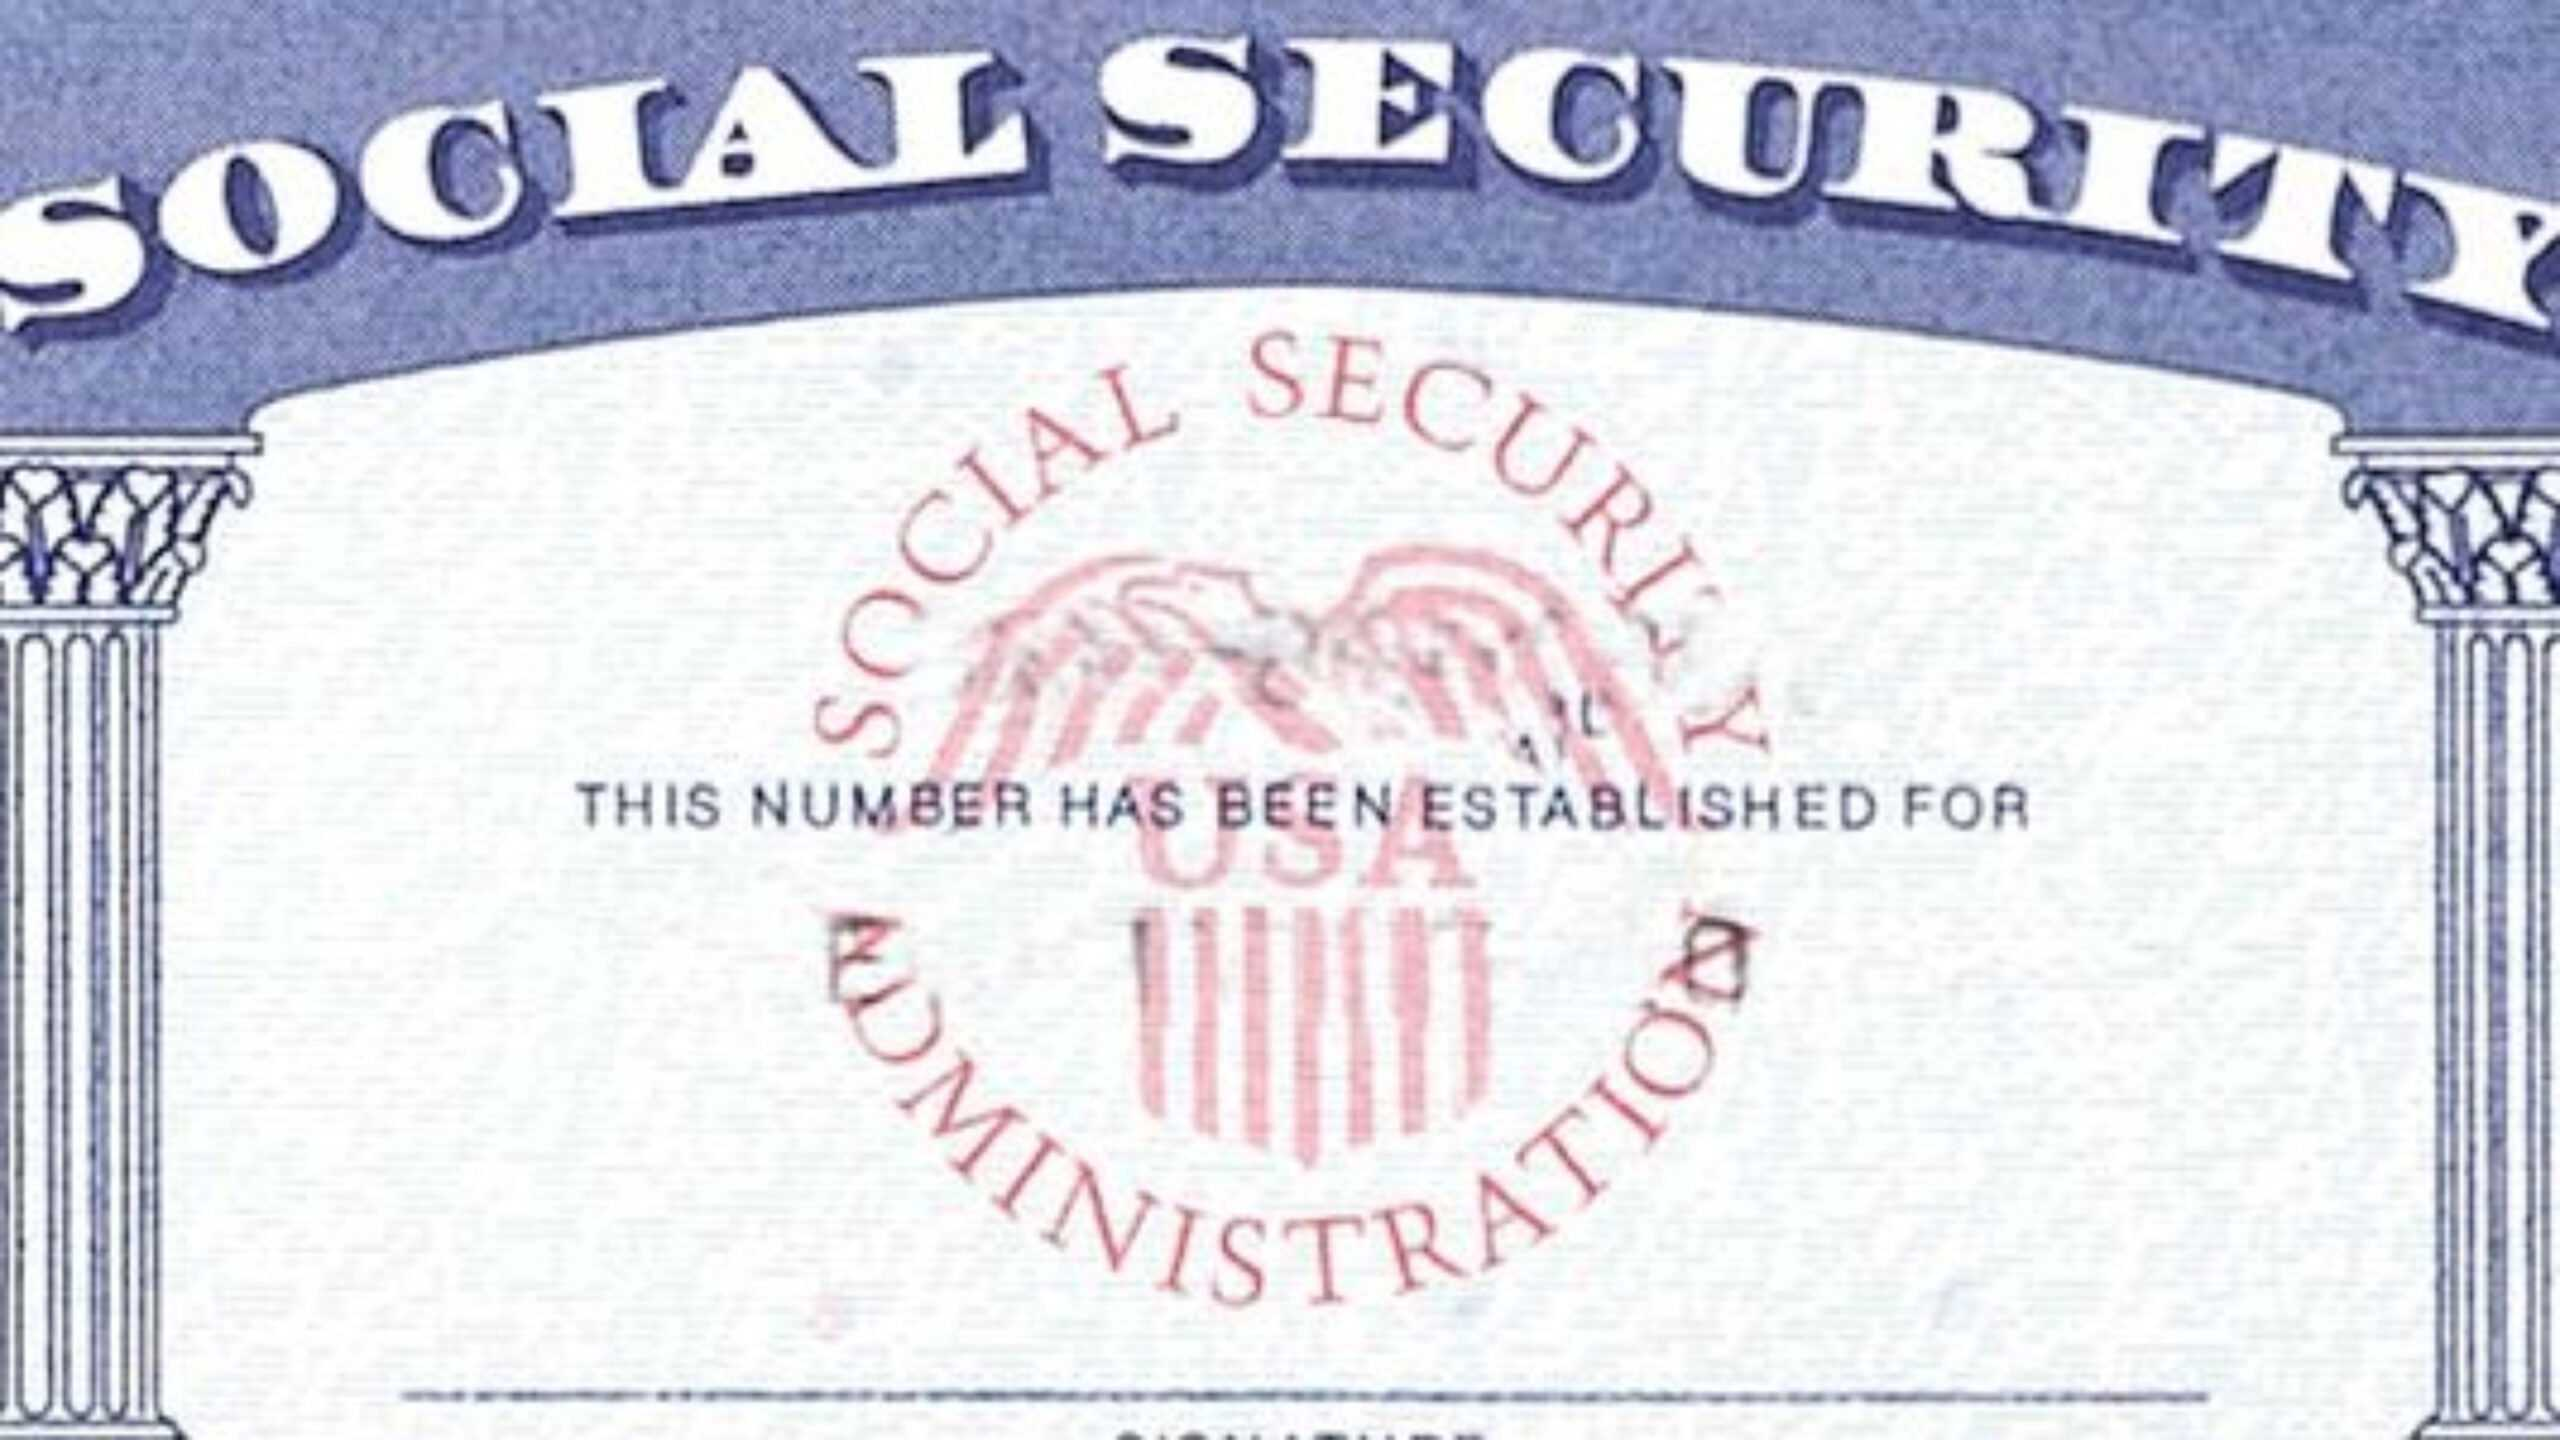 Blank Social Security Card Template Download - Great For Social Security Card Template Download